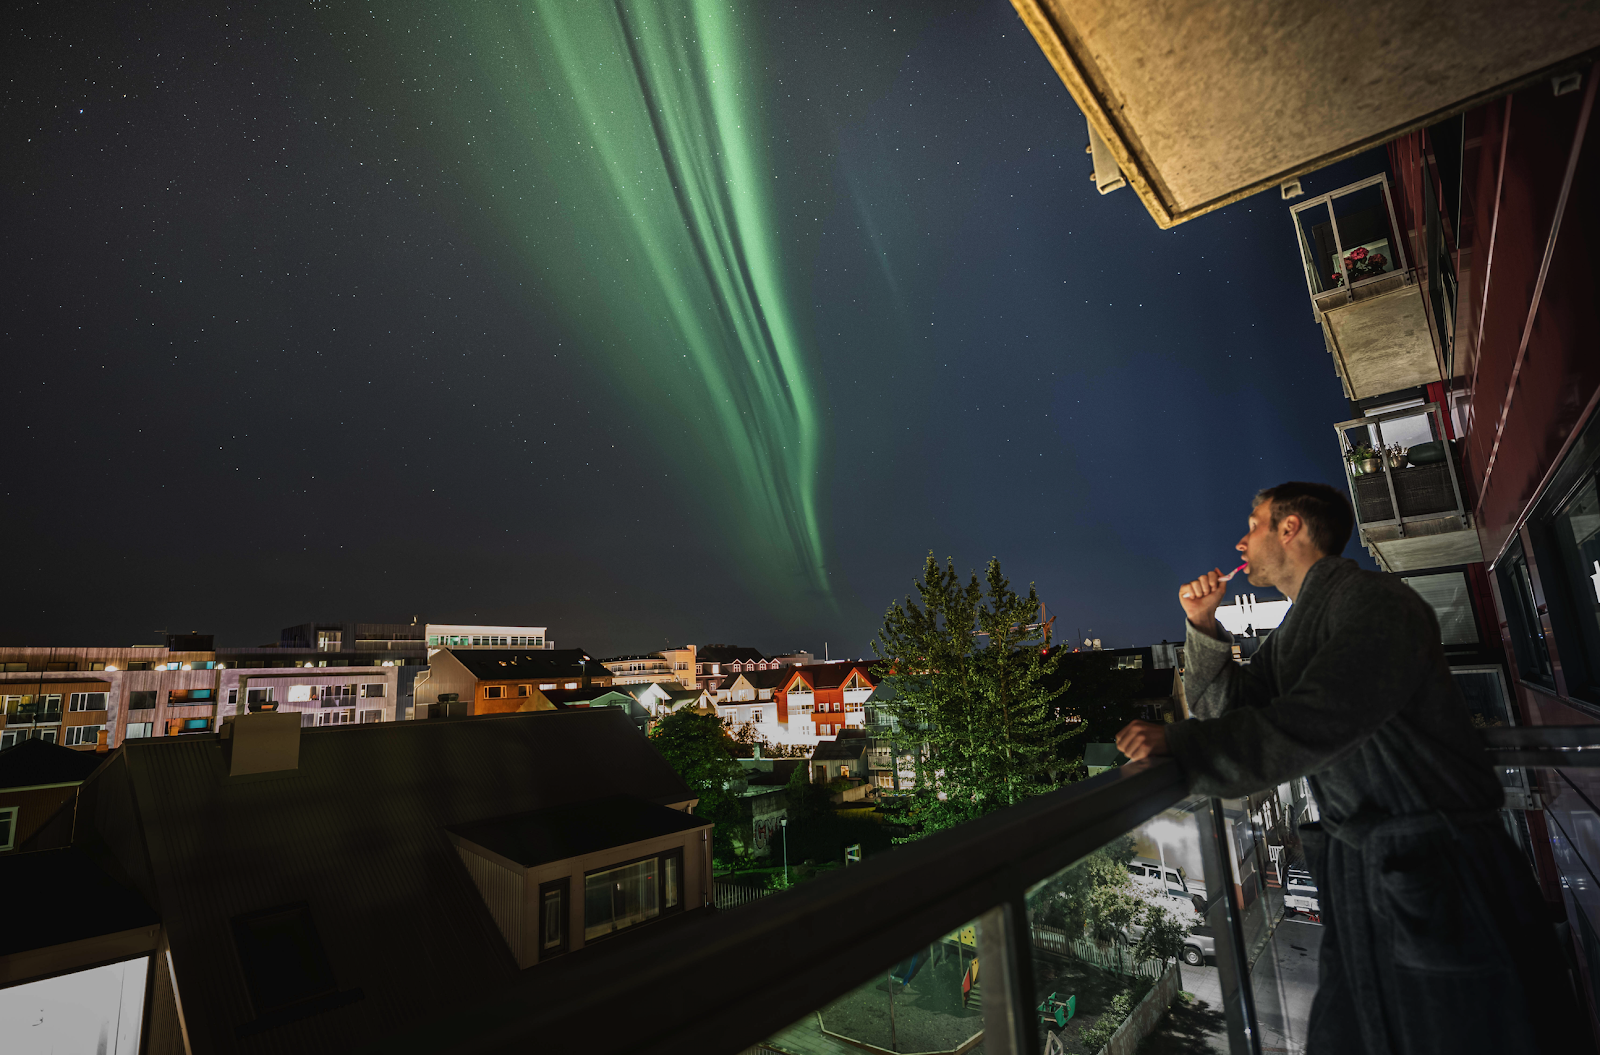 A man brushing his teeth under the Northern Lights in downtown Reykjavik